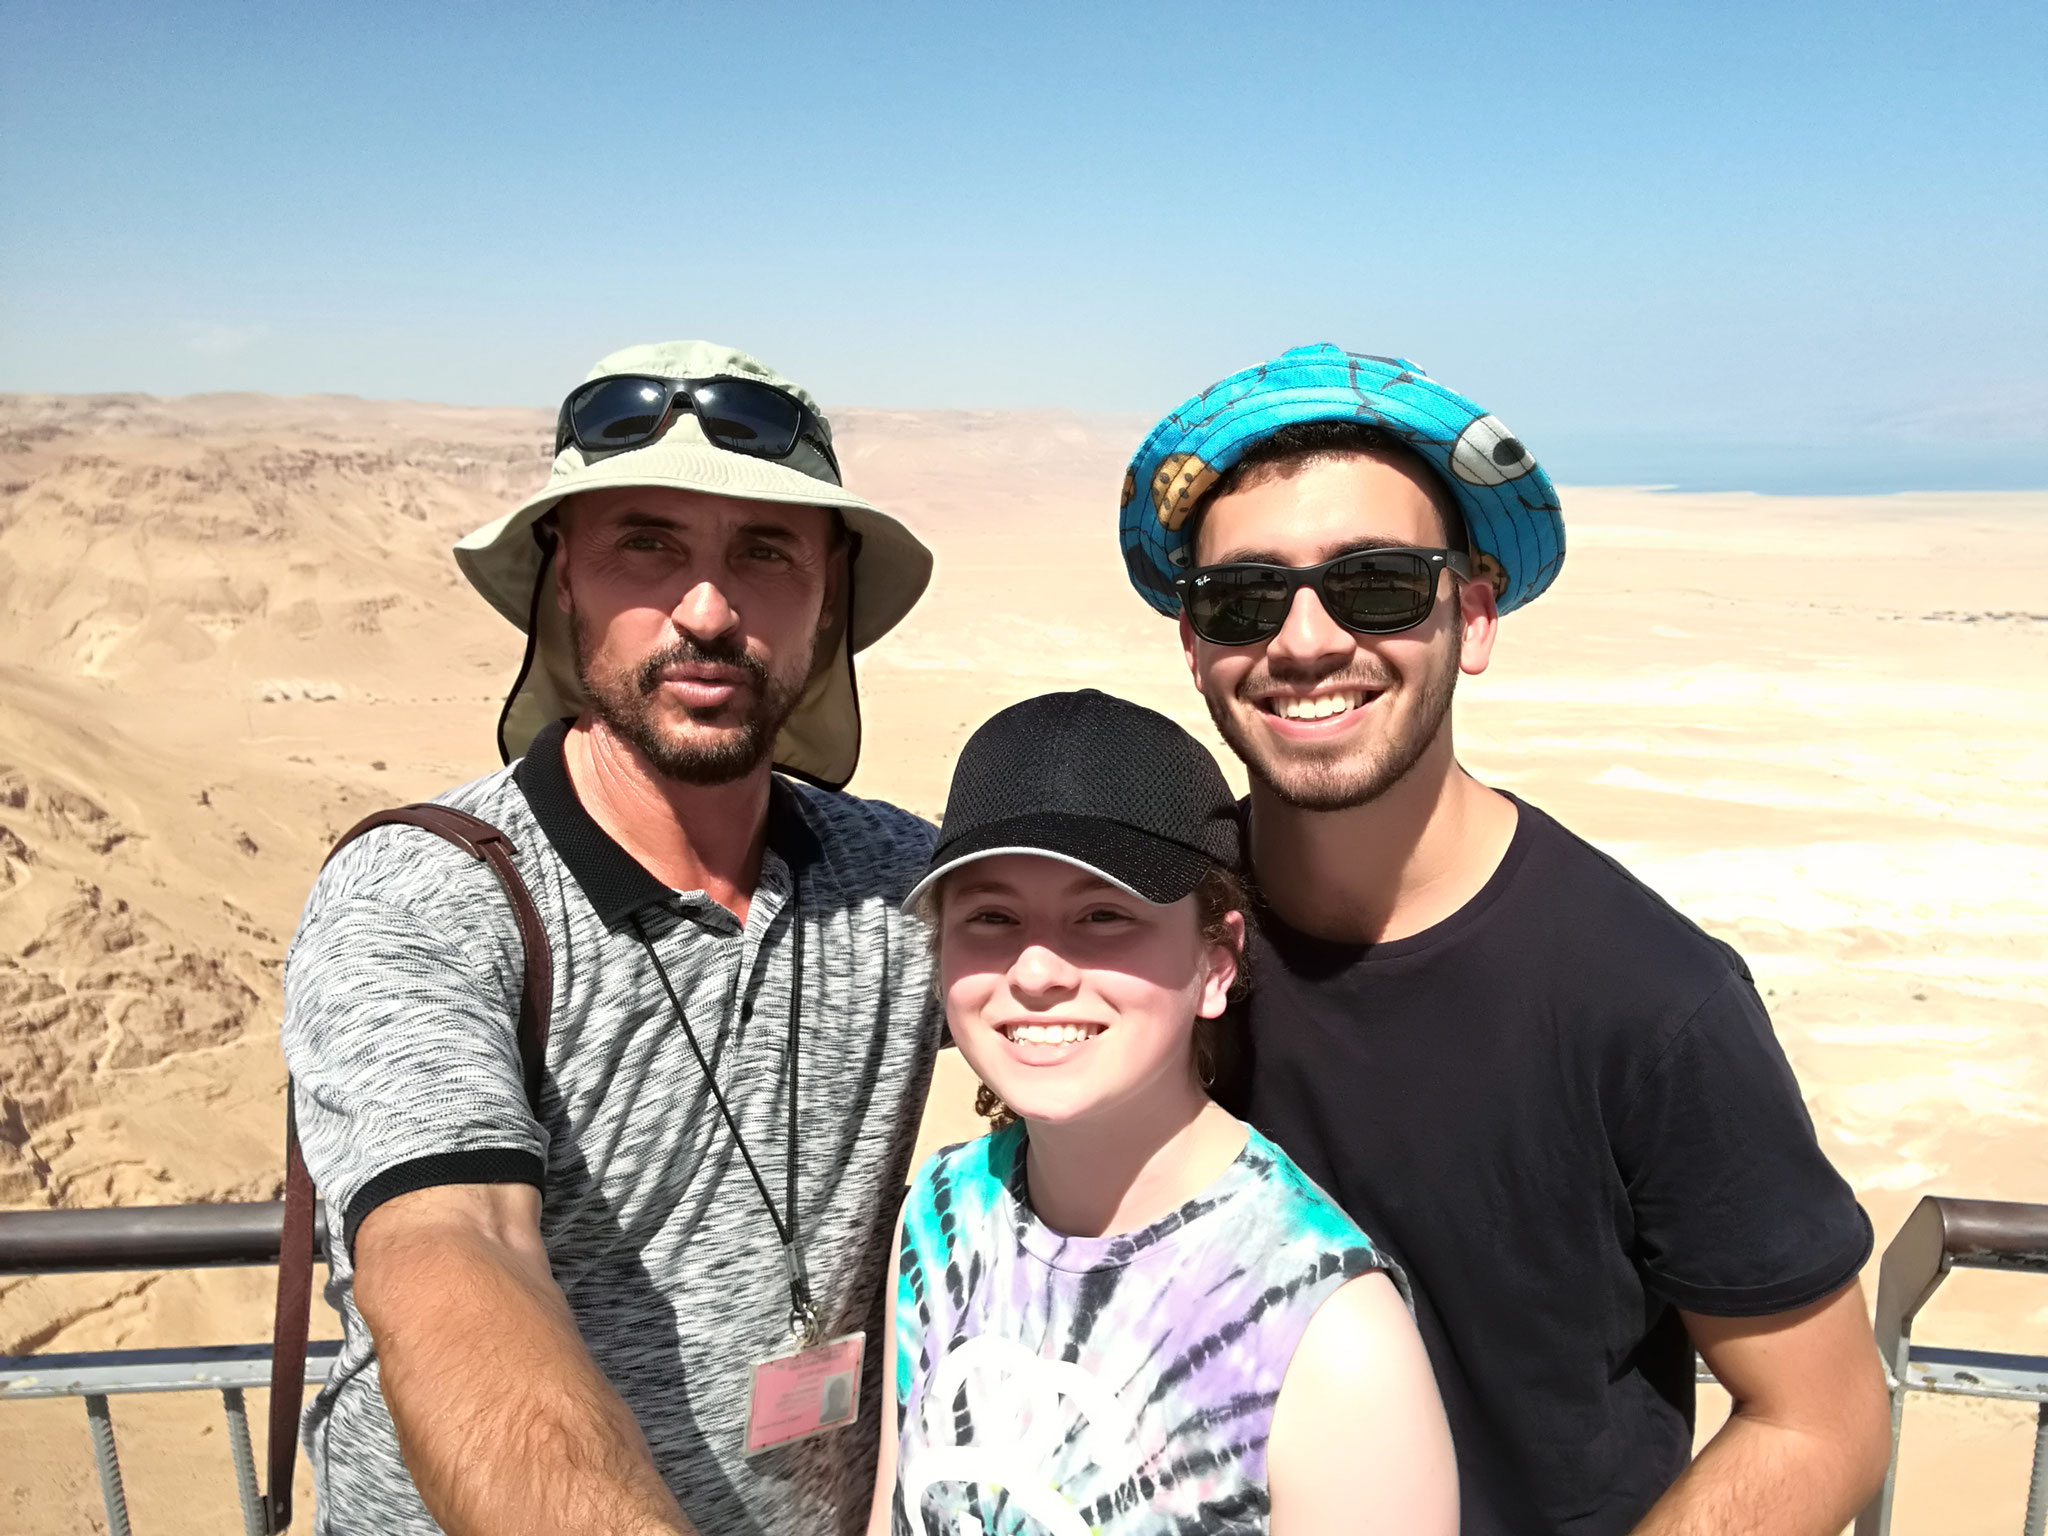 On top of Masada with Jewish American guests, 2016